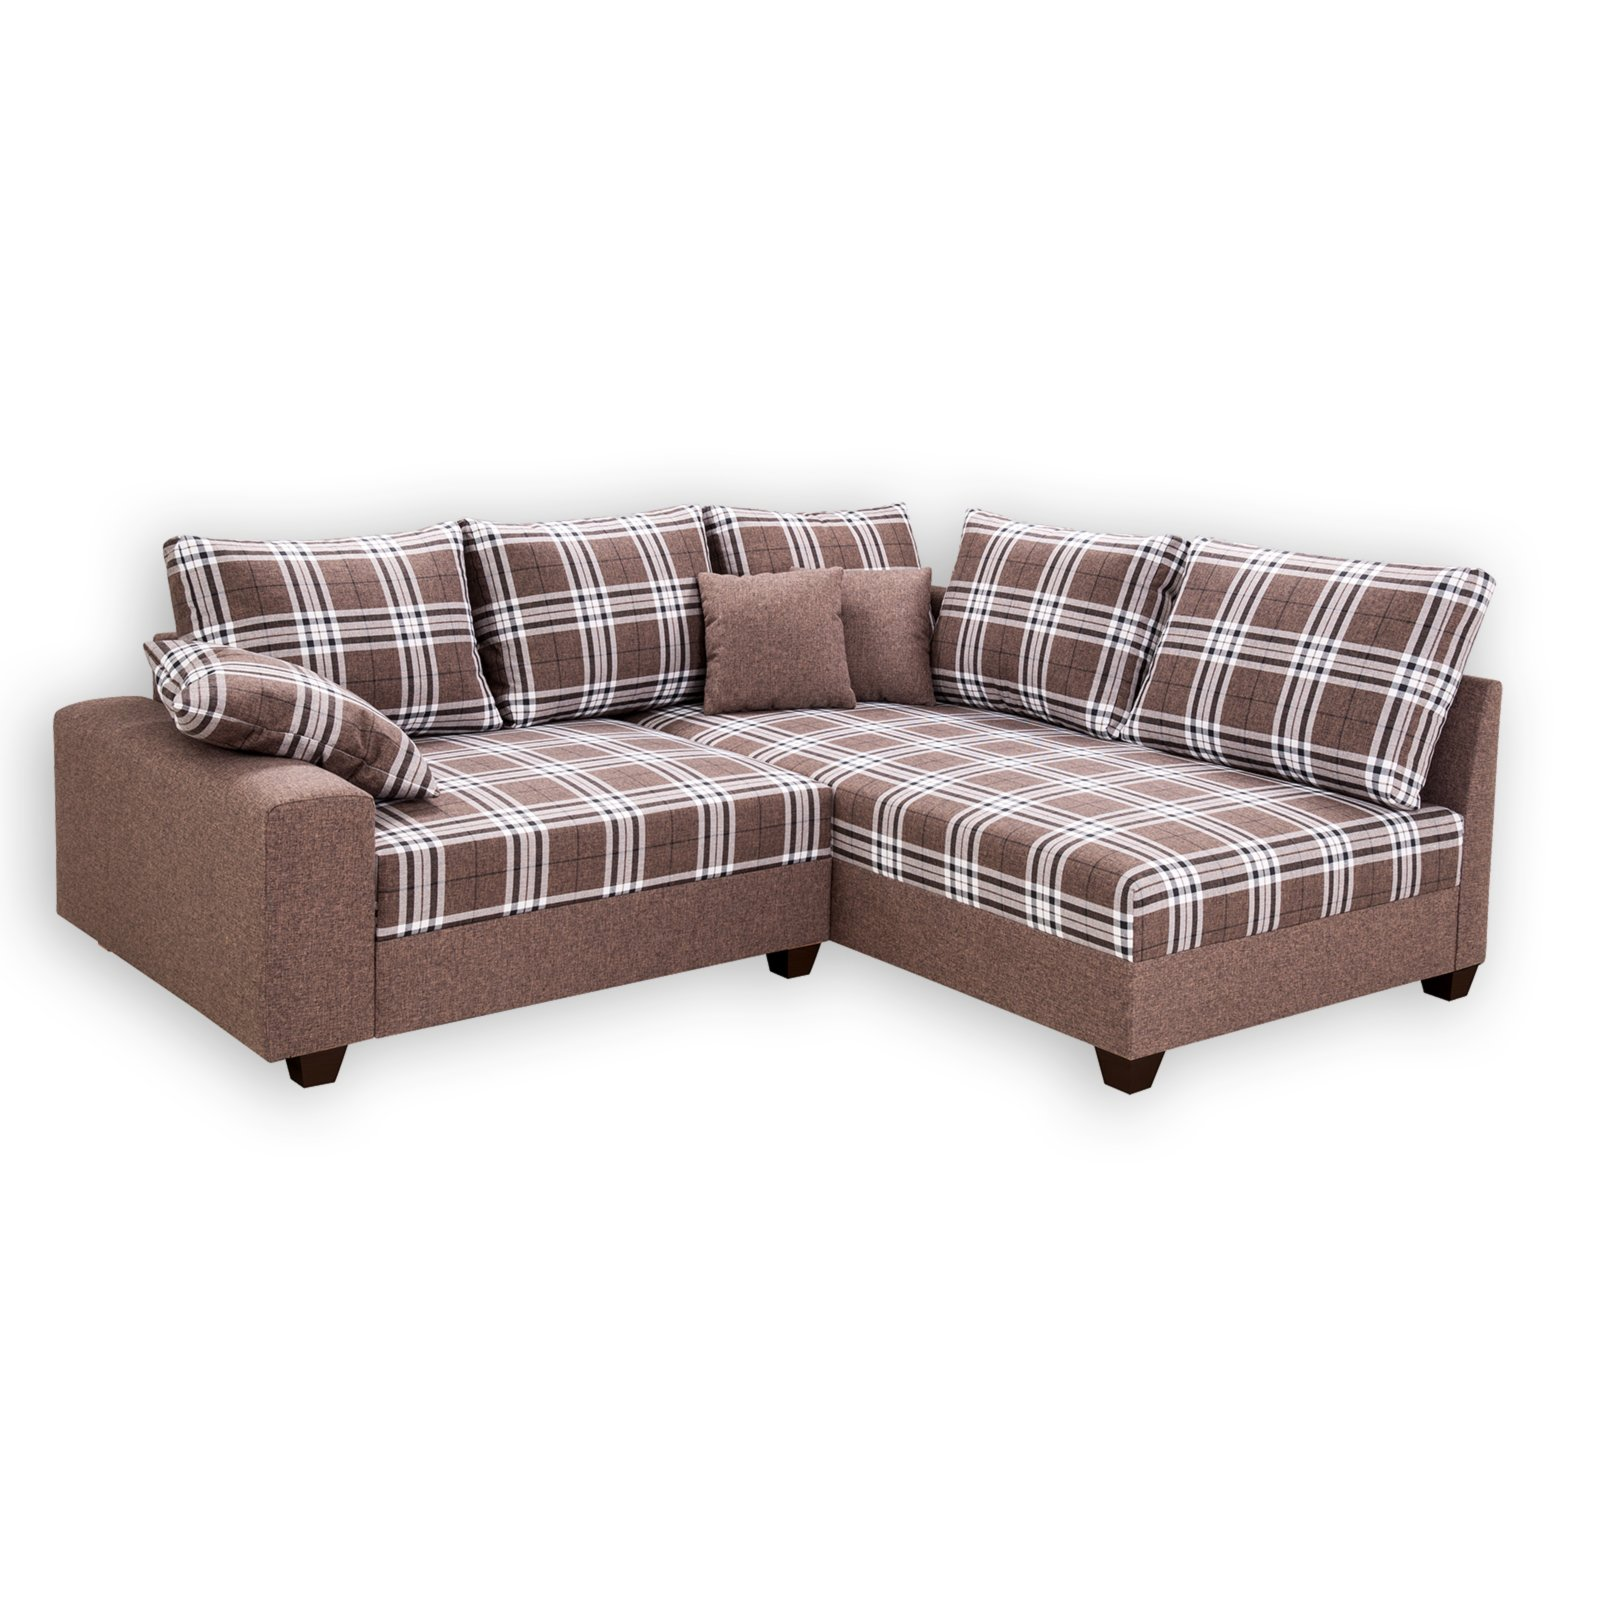 Ecksofa braun kariert landhausstil ecksofas l form for Ecksofa landhausstil